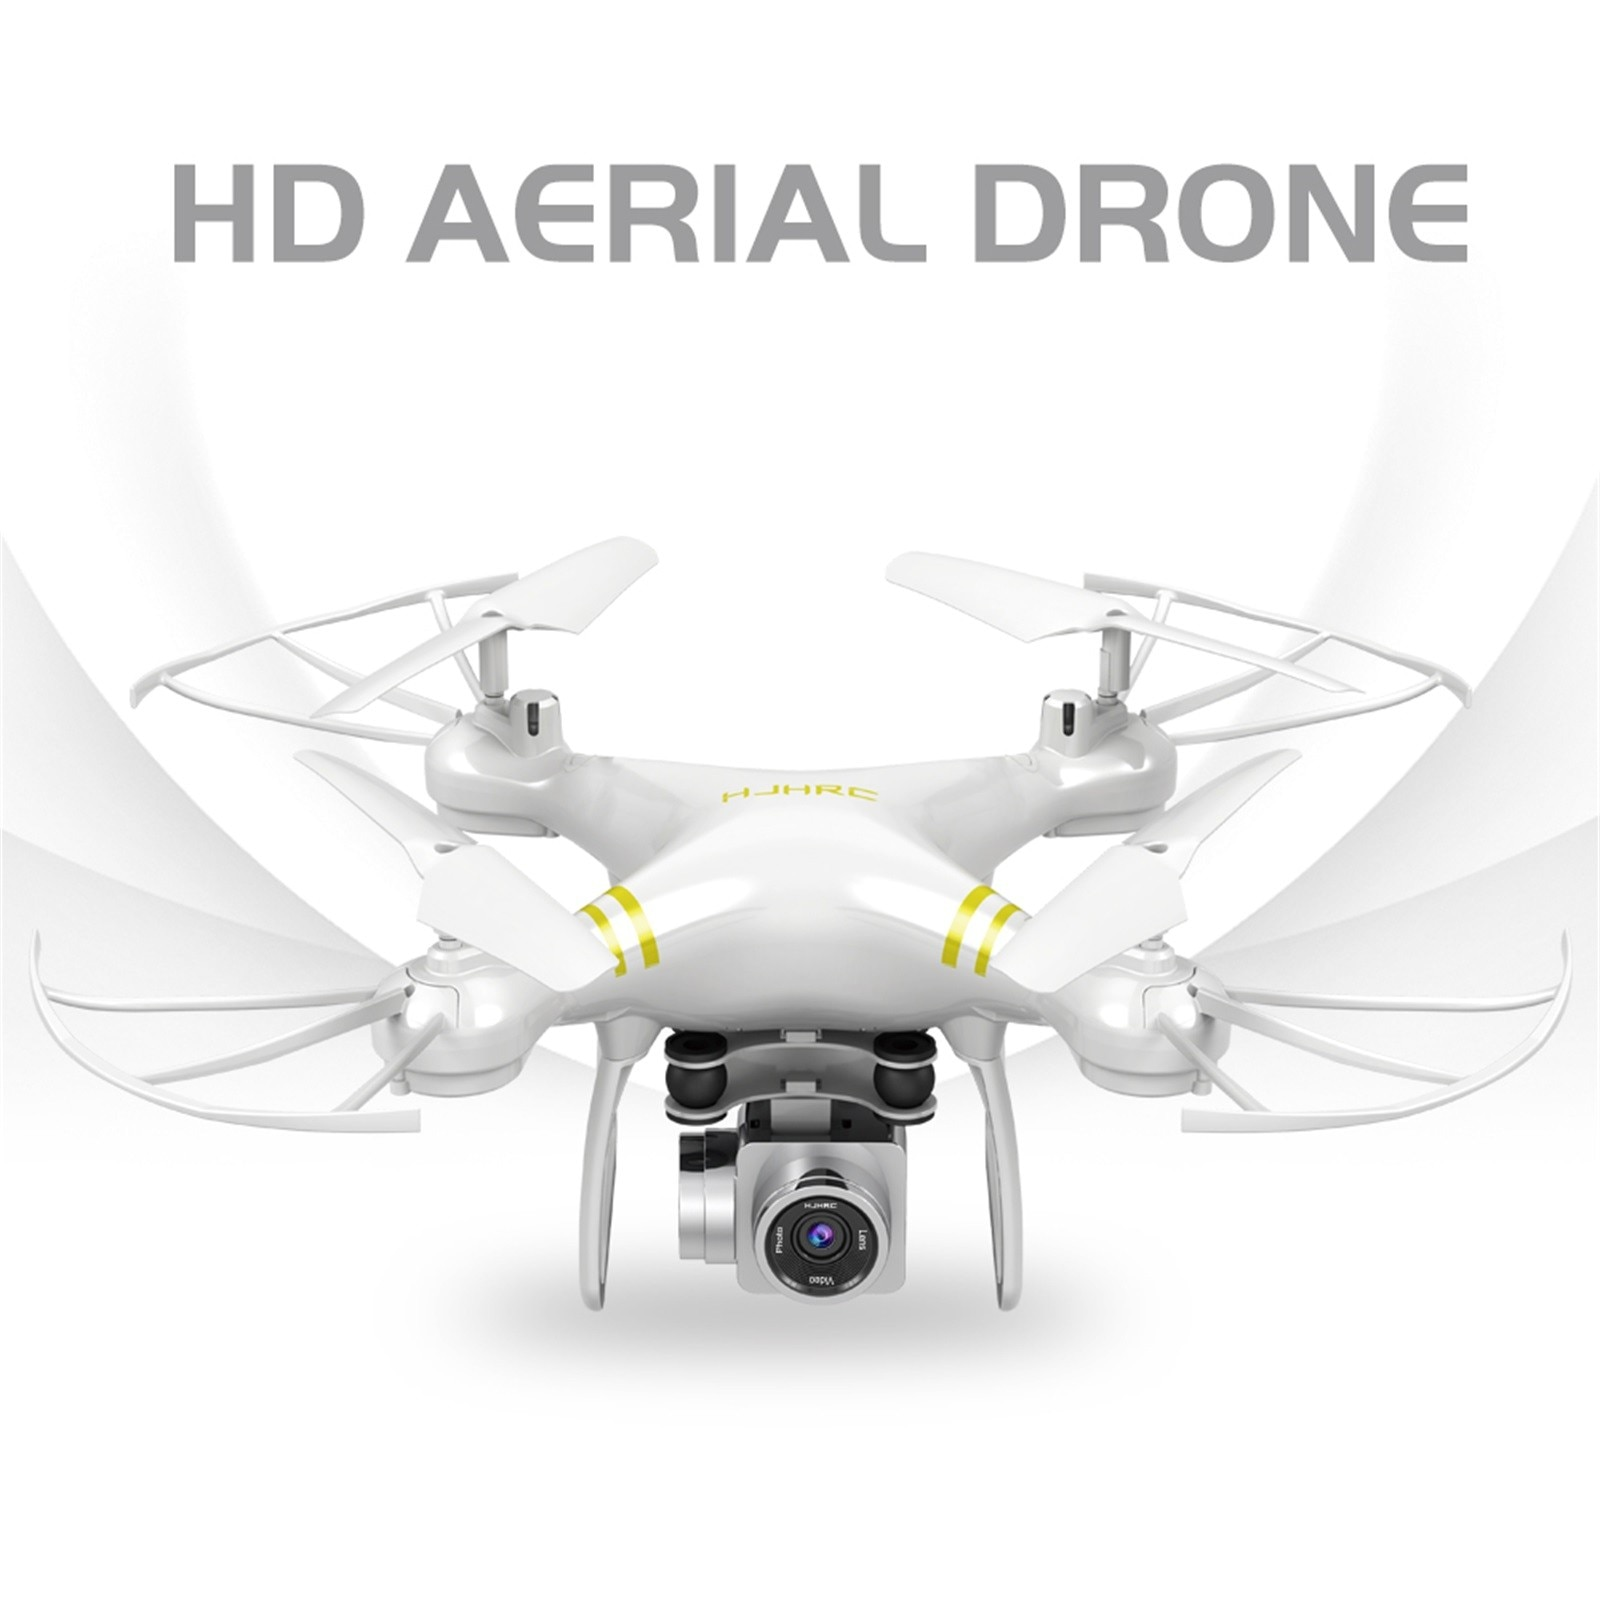 H6122f23f67ec4e1c923236d41cf4d102u - Hjhrc Four-axis Aerial Photography Aircraft Drone With Camera Hd 4k Wifi Fpv Foldable Drone Height Holding Headless Quadcopter